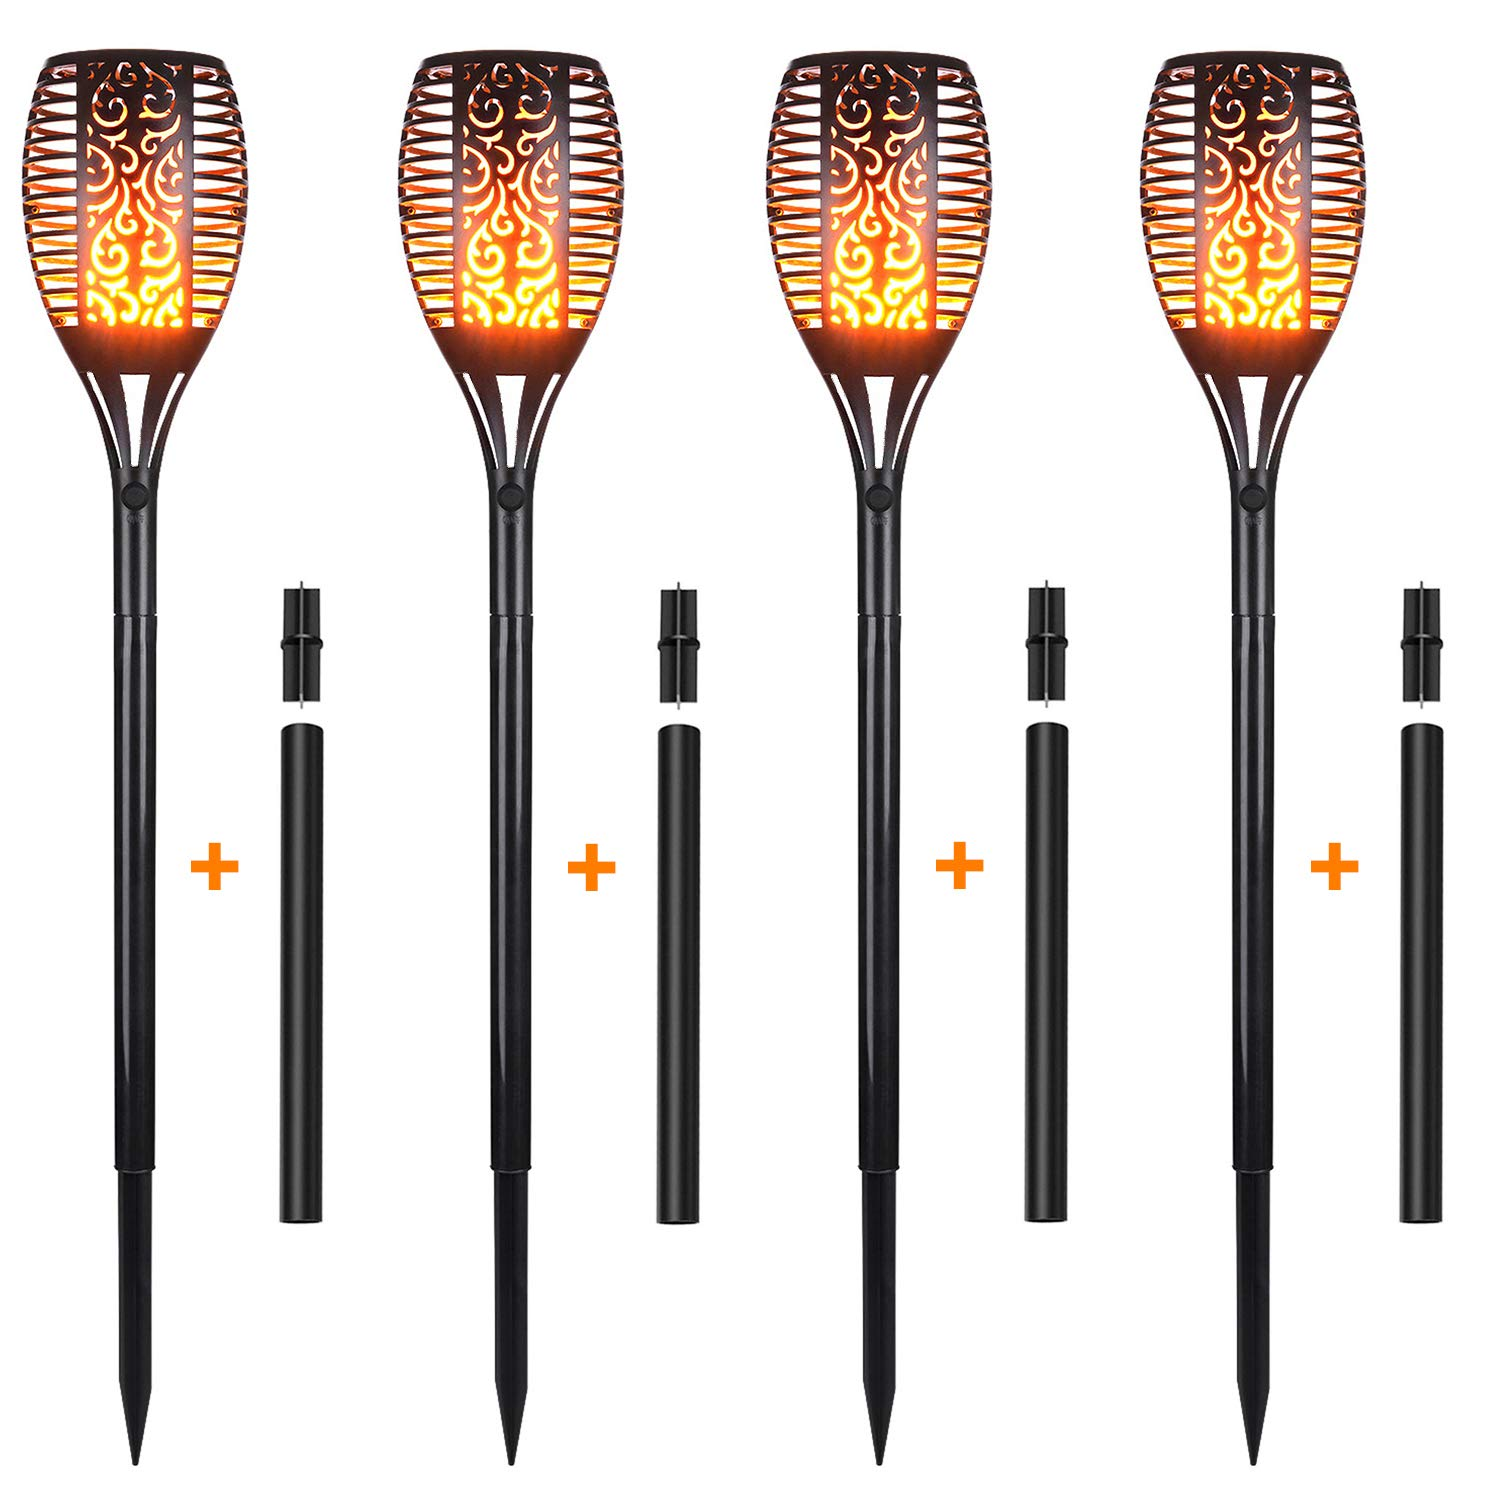 Xtozon Solar Torch Lights Upgraded, Dancing Flames Torch Solar Lamp, 96 LED Flame Effect Saving Lamp, Waterproof Outdoor Pathway Decoration Solar Security Light Auto On/Off from Dusk to Dawn - 4 pack by Xtozon